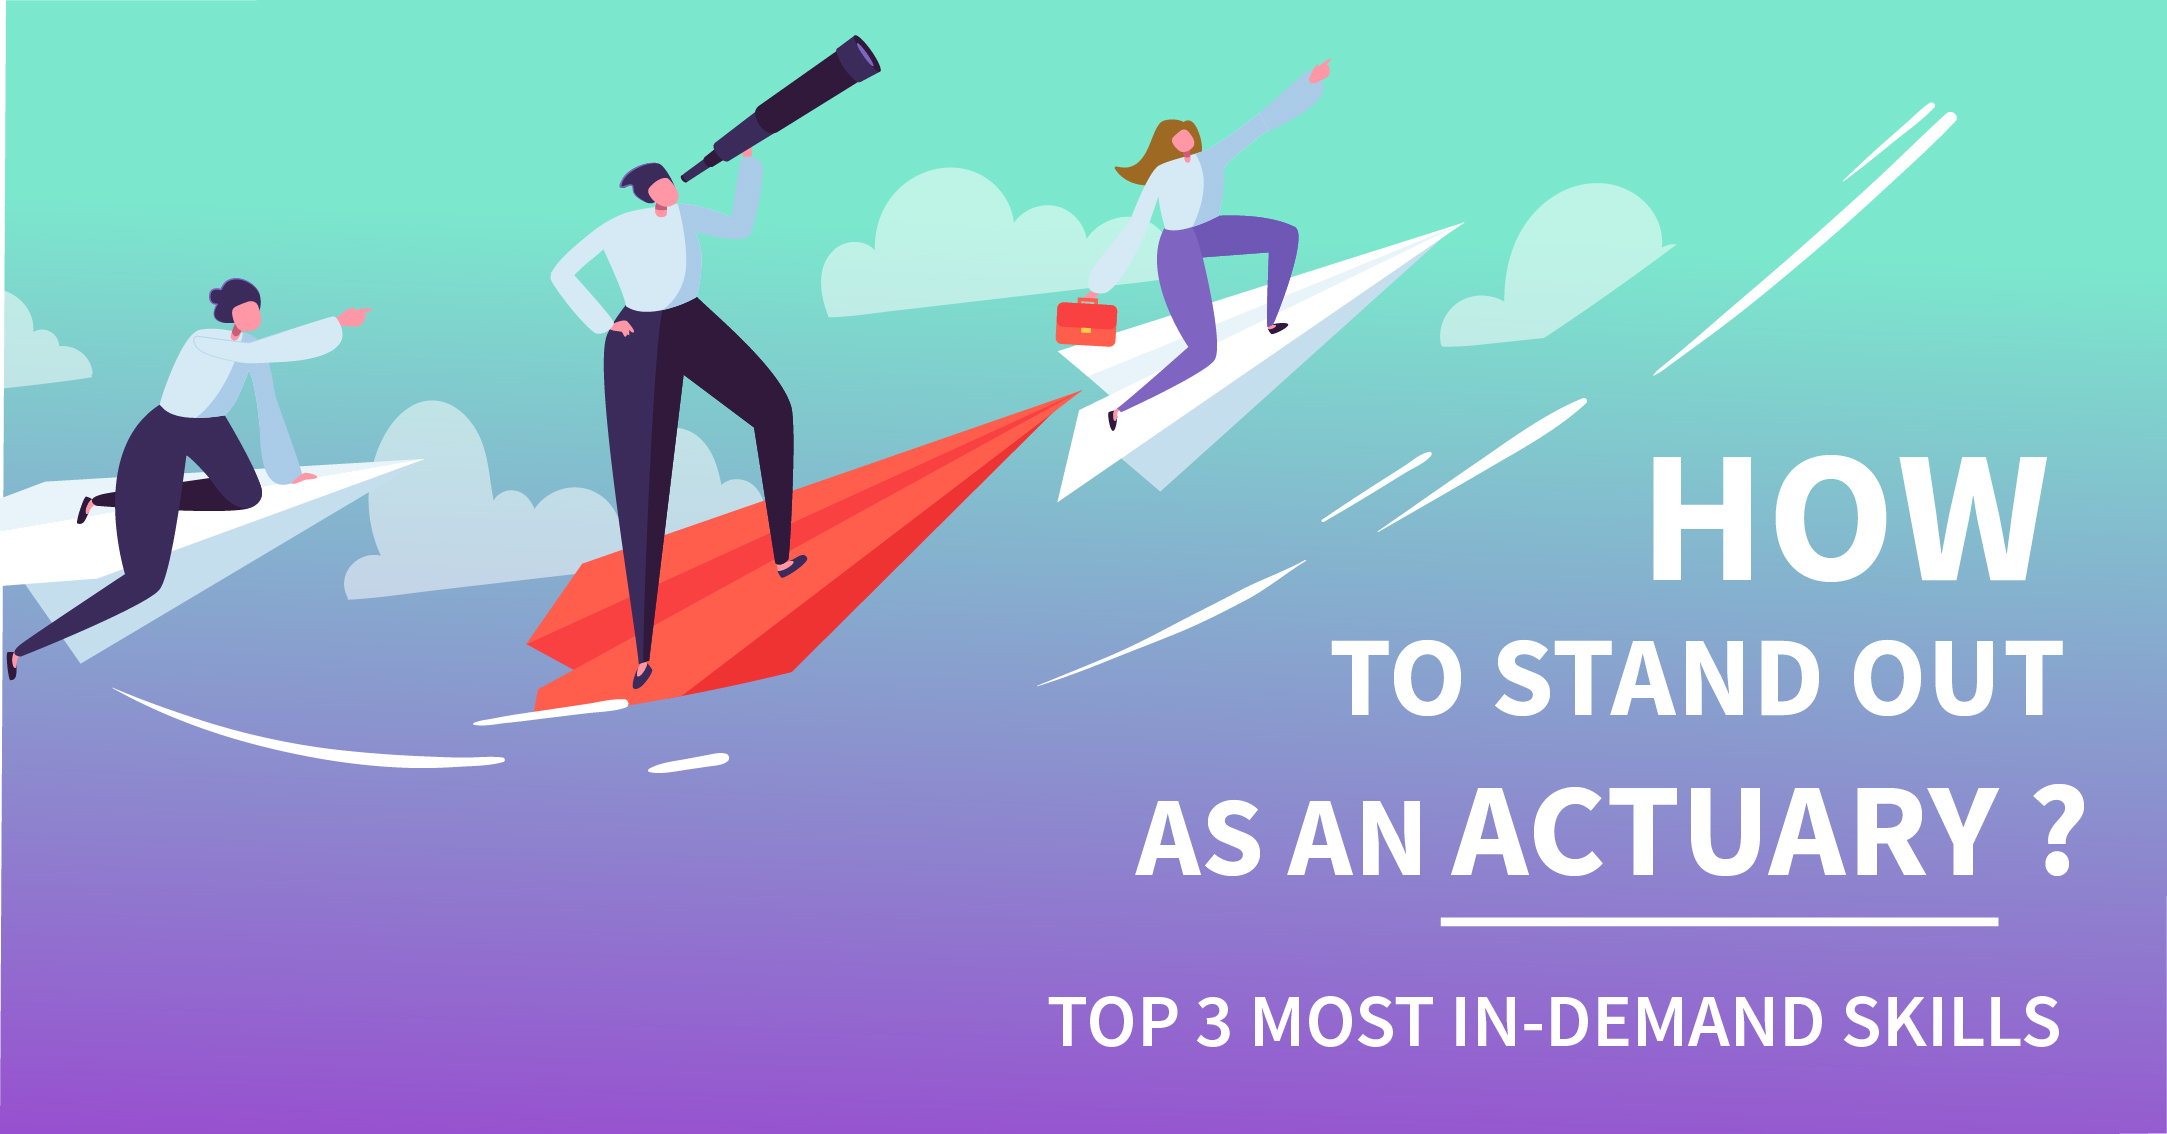 How to stand out as an actuary: our top 3 most in-demand skills